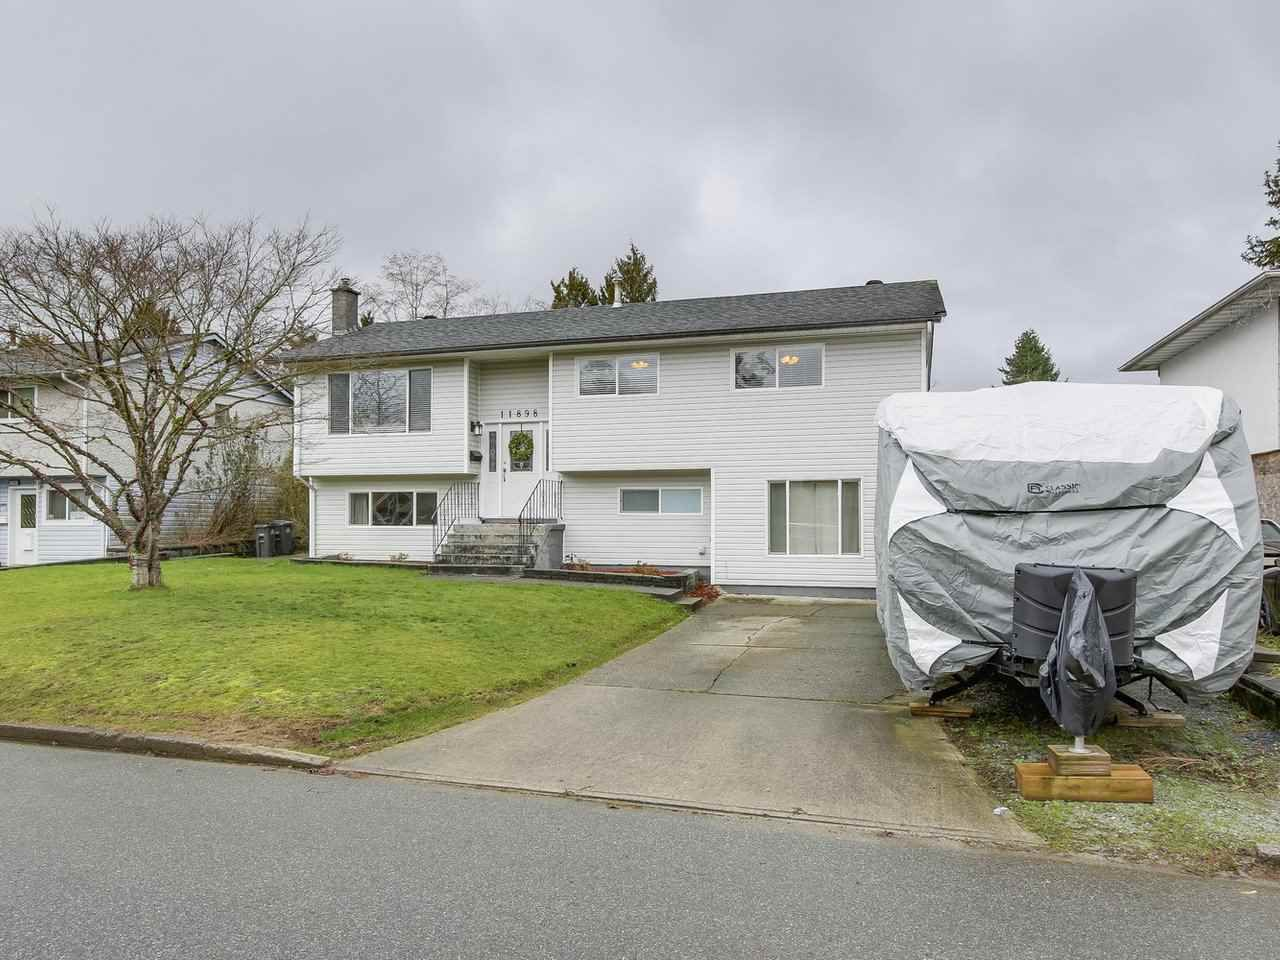 Main Photo: 11898 229 Street in Maple Ridge: East Central House for sale : MLS®# R2237089